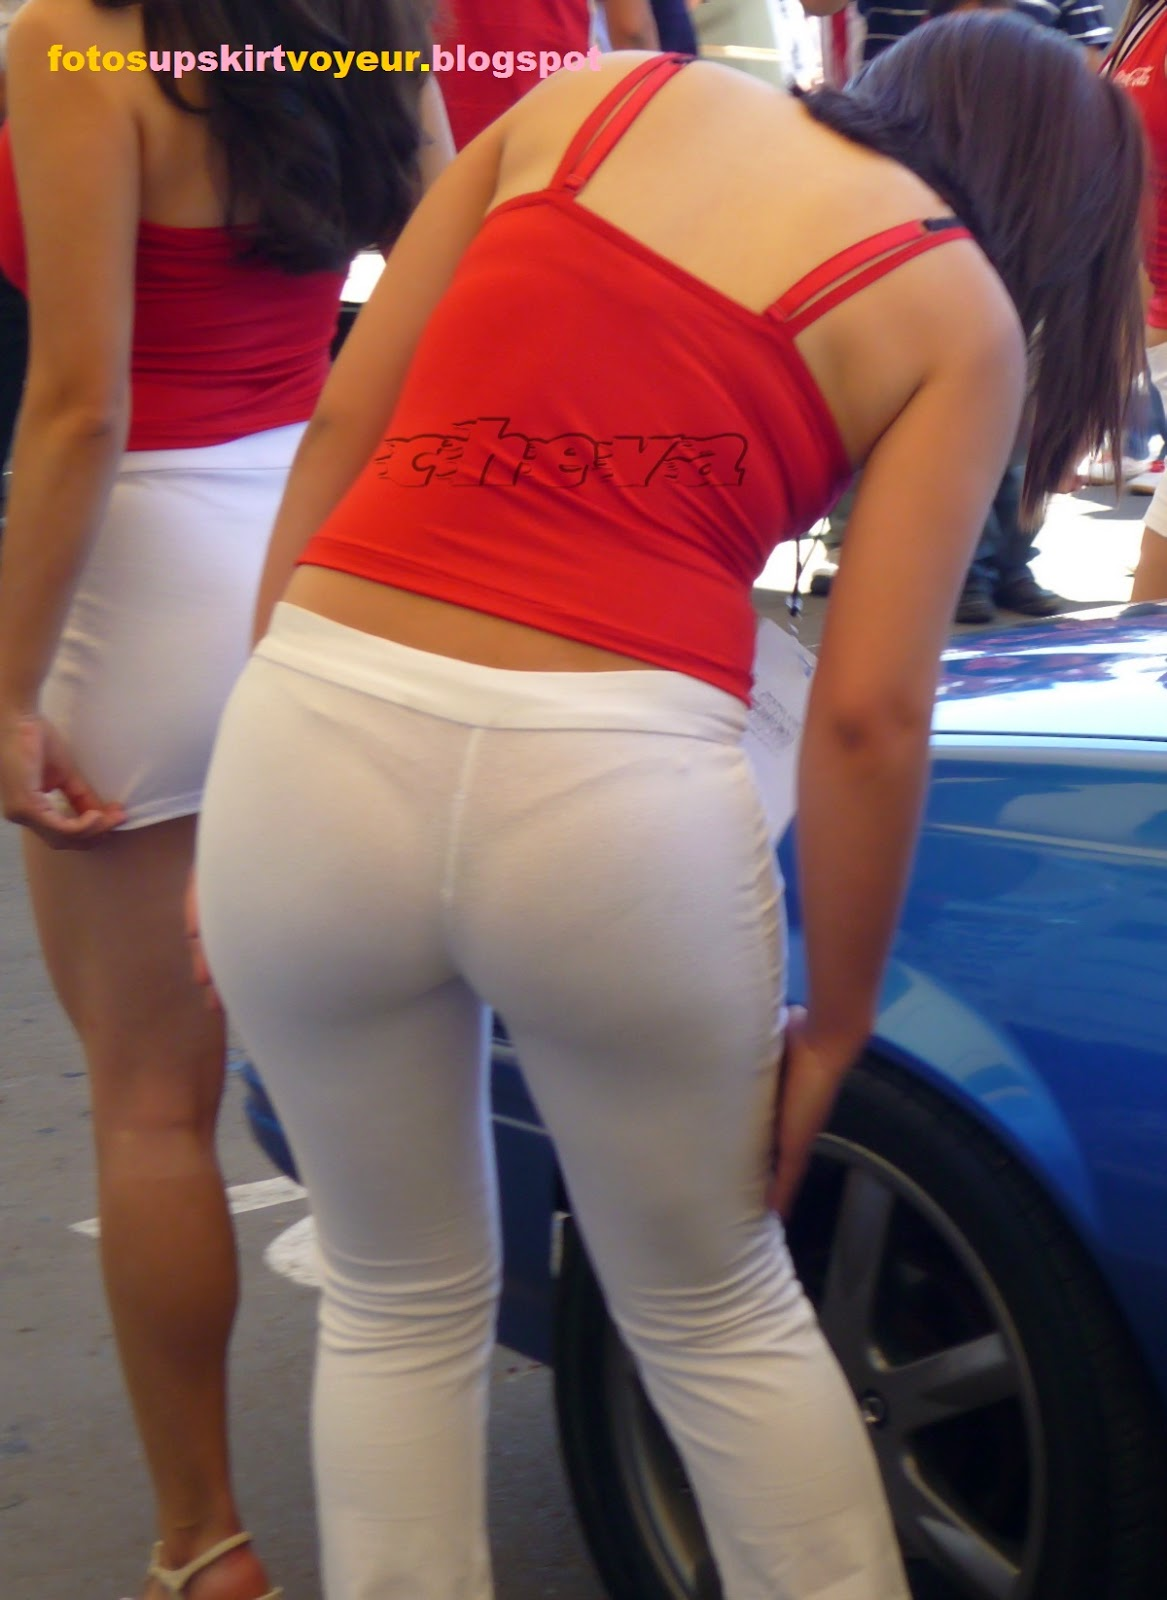 Pendeja en jeans blancos terrible ortoo - 3 part 2